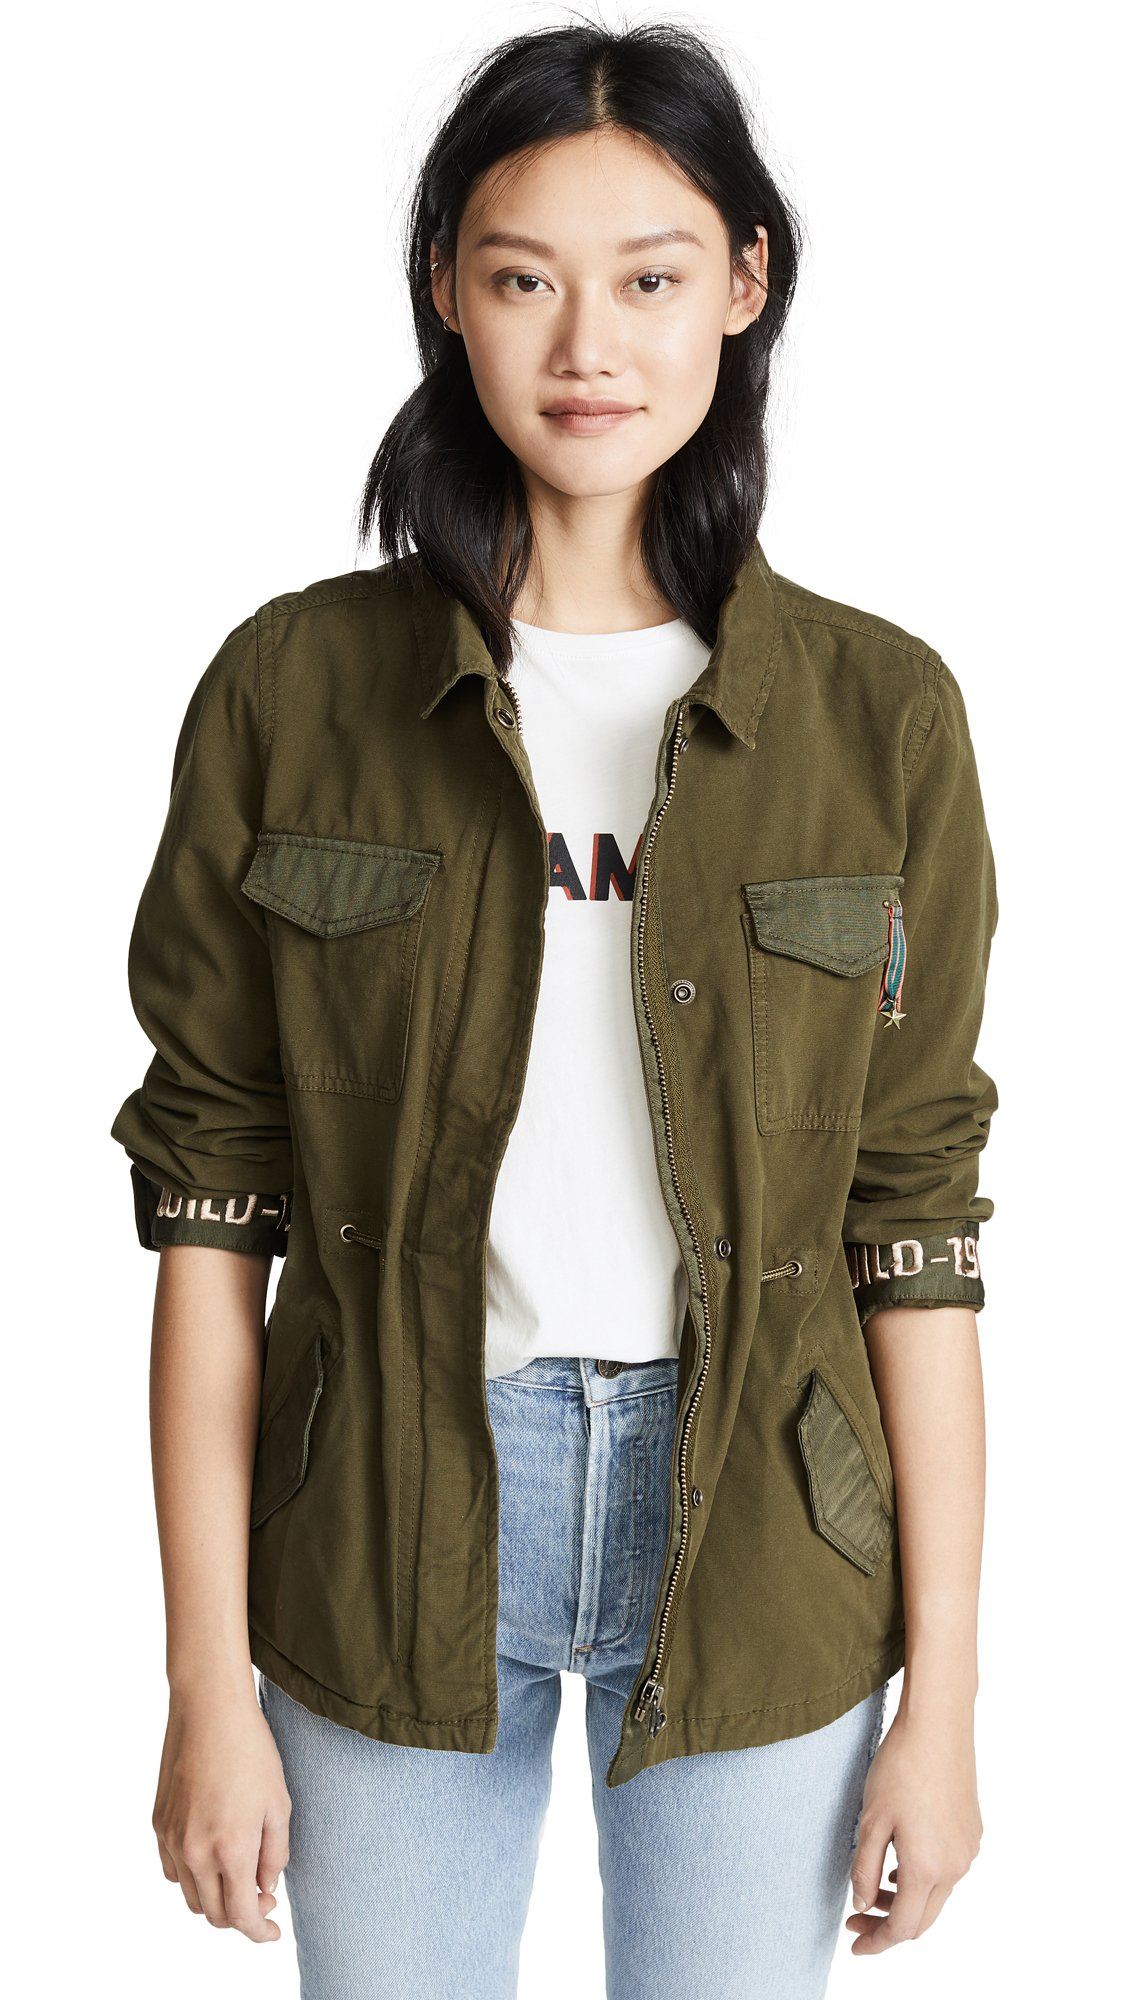 Scotch & Soda Maison Scotch Women's Festival Army Jacket, Army, Medium